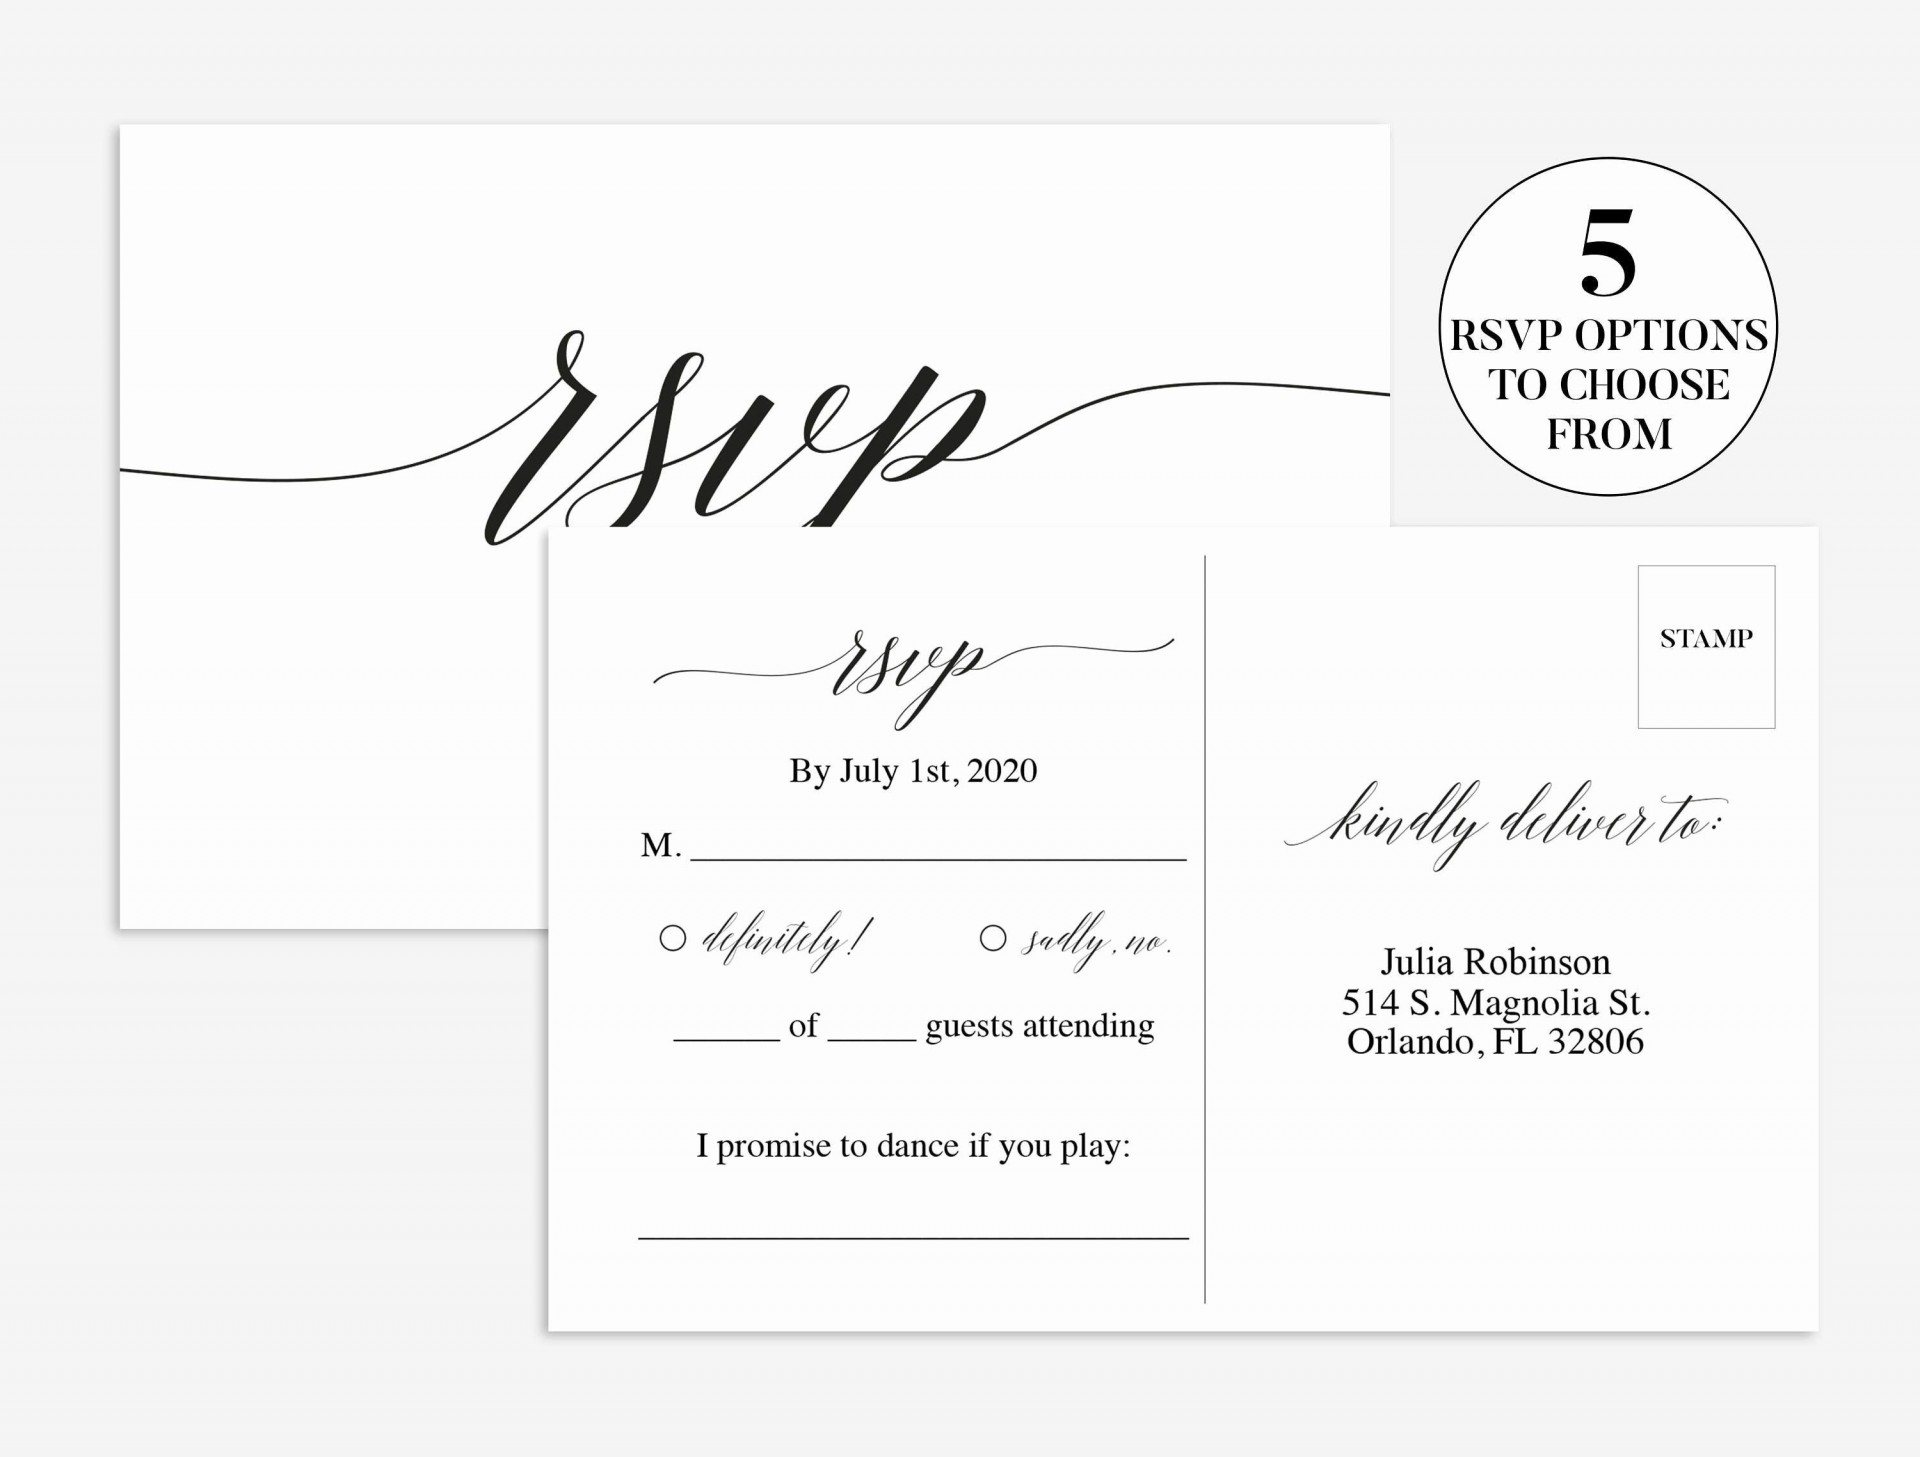 008 Fascinating Rsvp Postcard Template For Word Highest Quality 1920